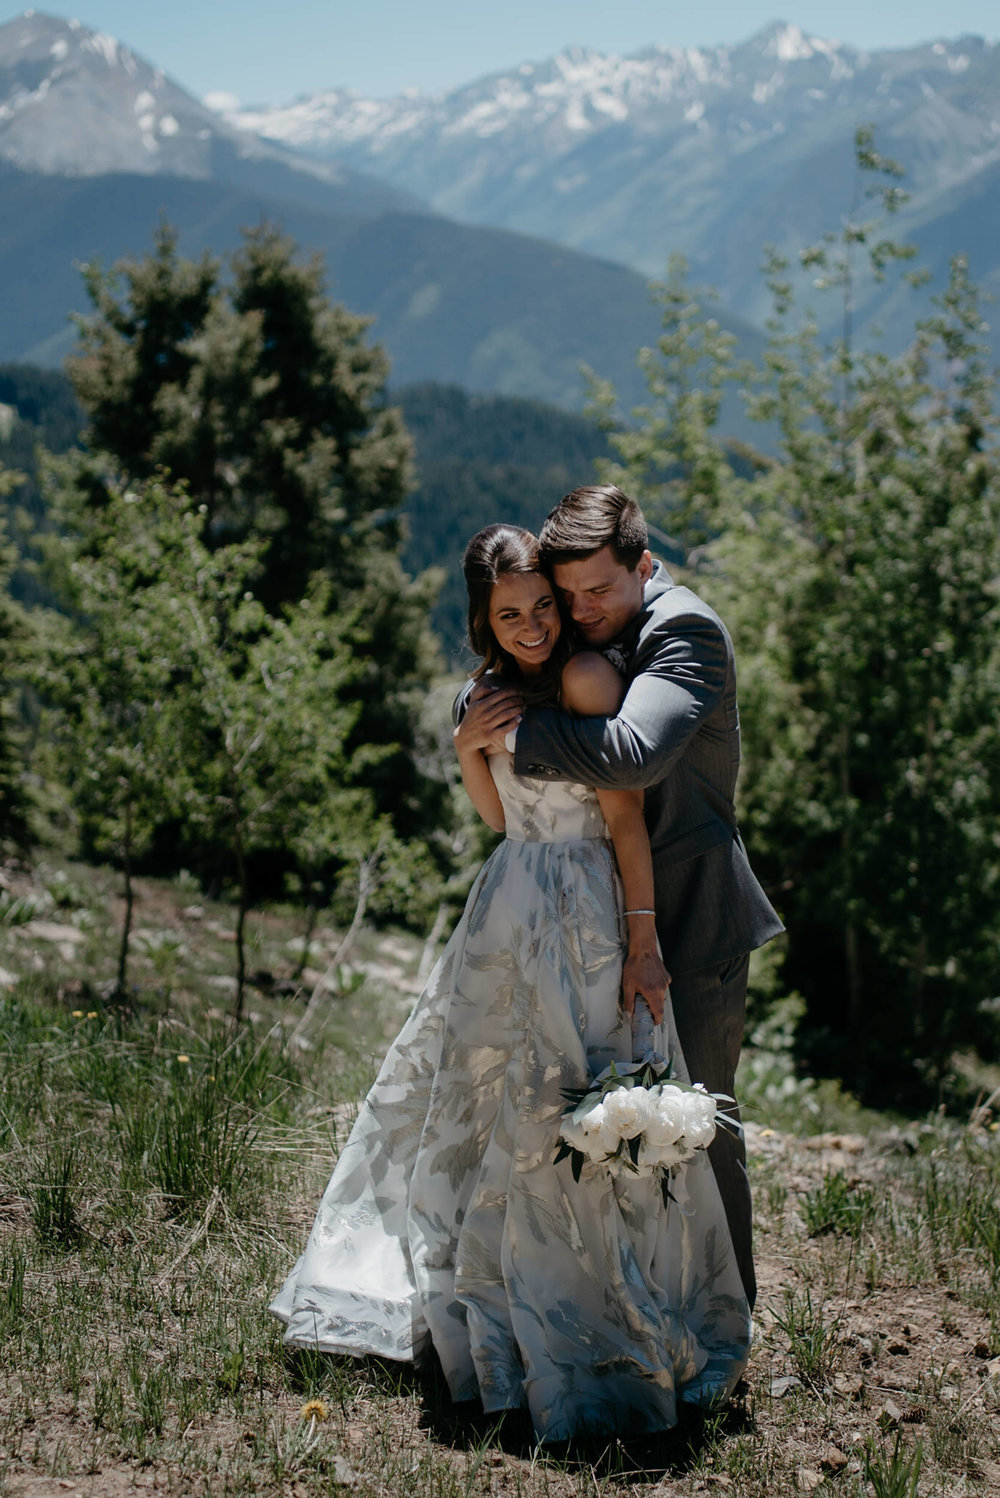 Alyssa Reinhold, Colorado based elopement and wedding photographer